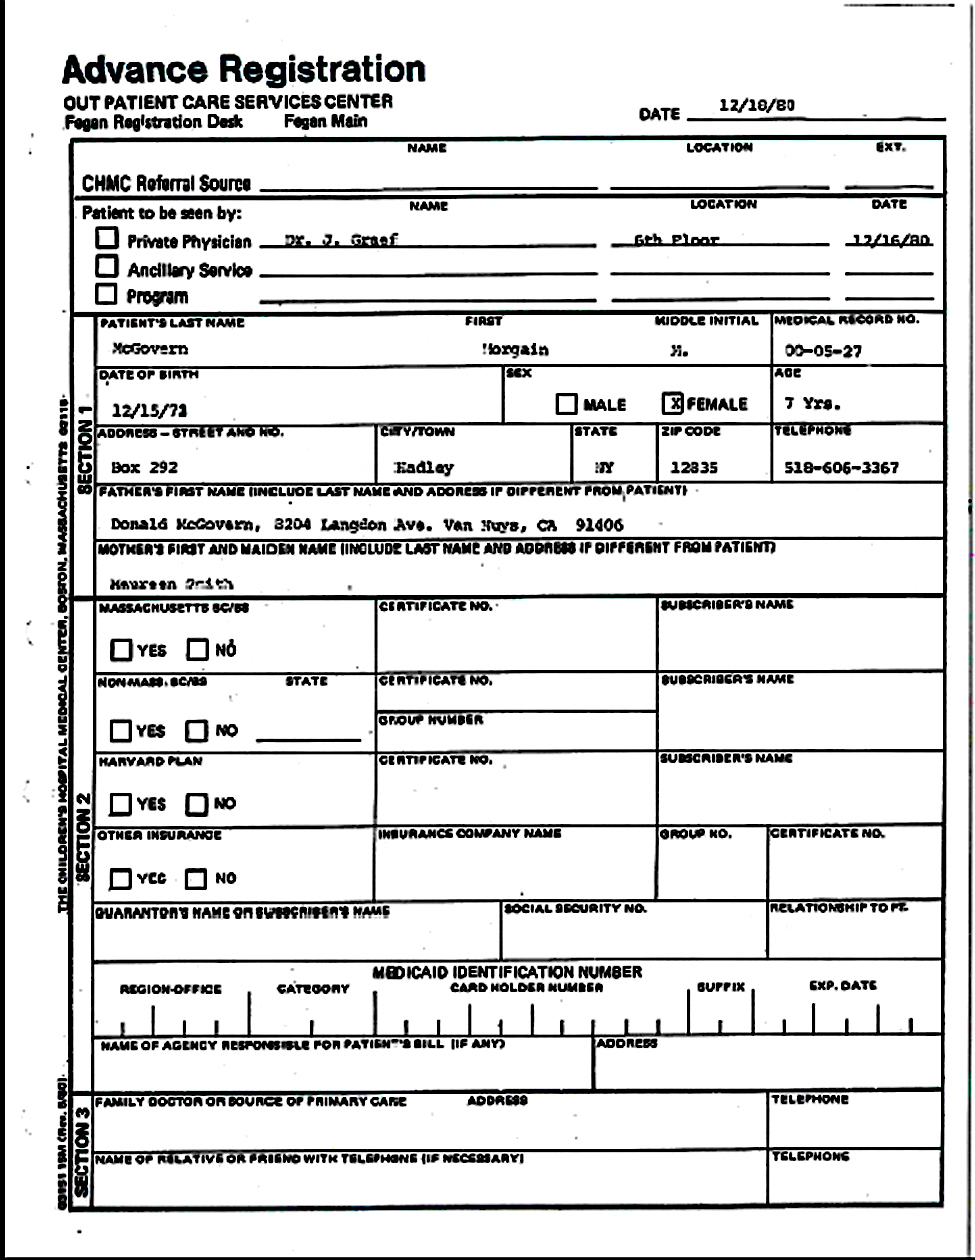 Boston Childrens Hospital page 1 Dr Graef records copy